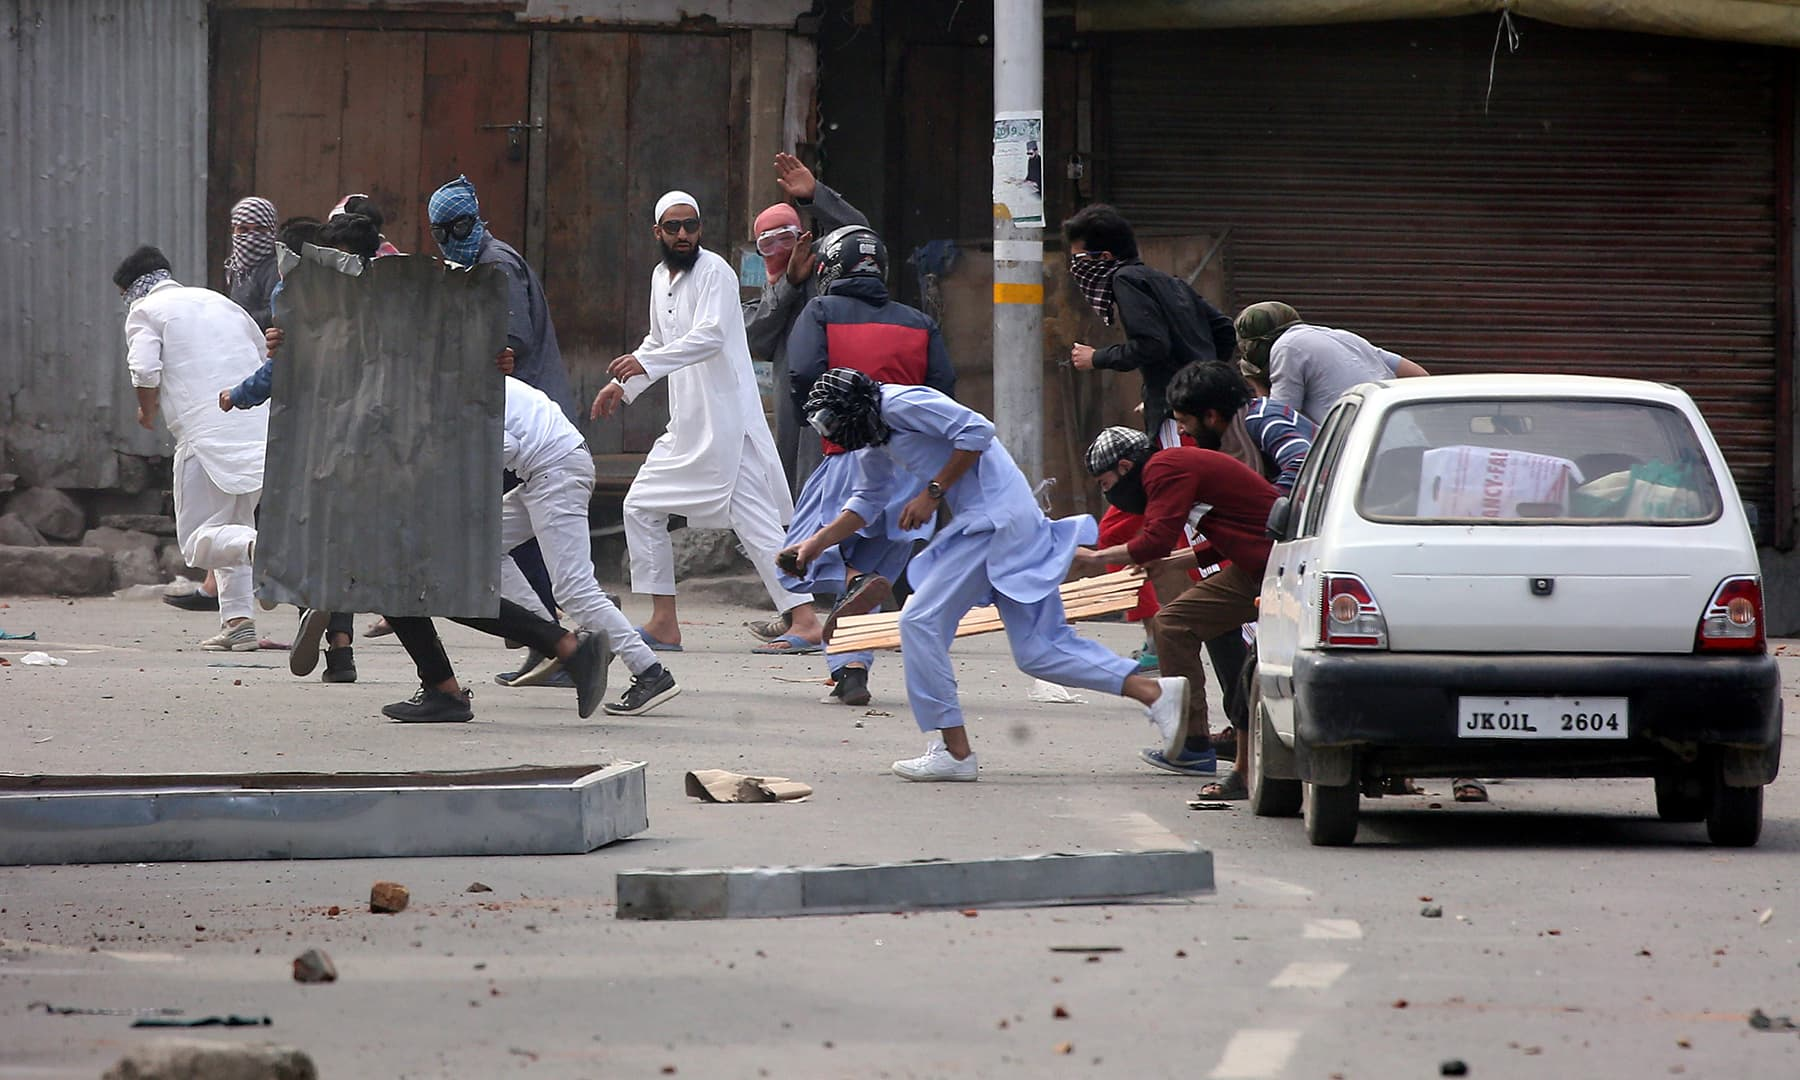 Kashmiri demonstrators run for cover as Indian police (unseen) chase them during a protest after Jumatul Wida prayers in Srinagar, Indian-occupied Kashmir on Friday. — Reuters